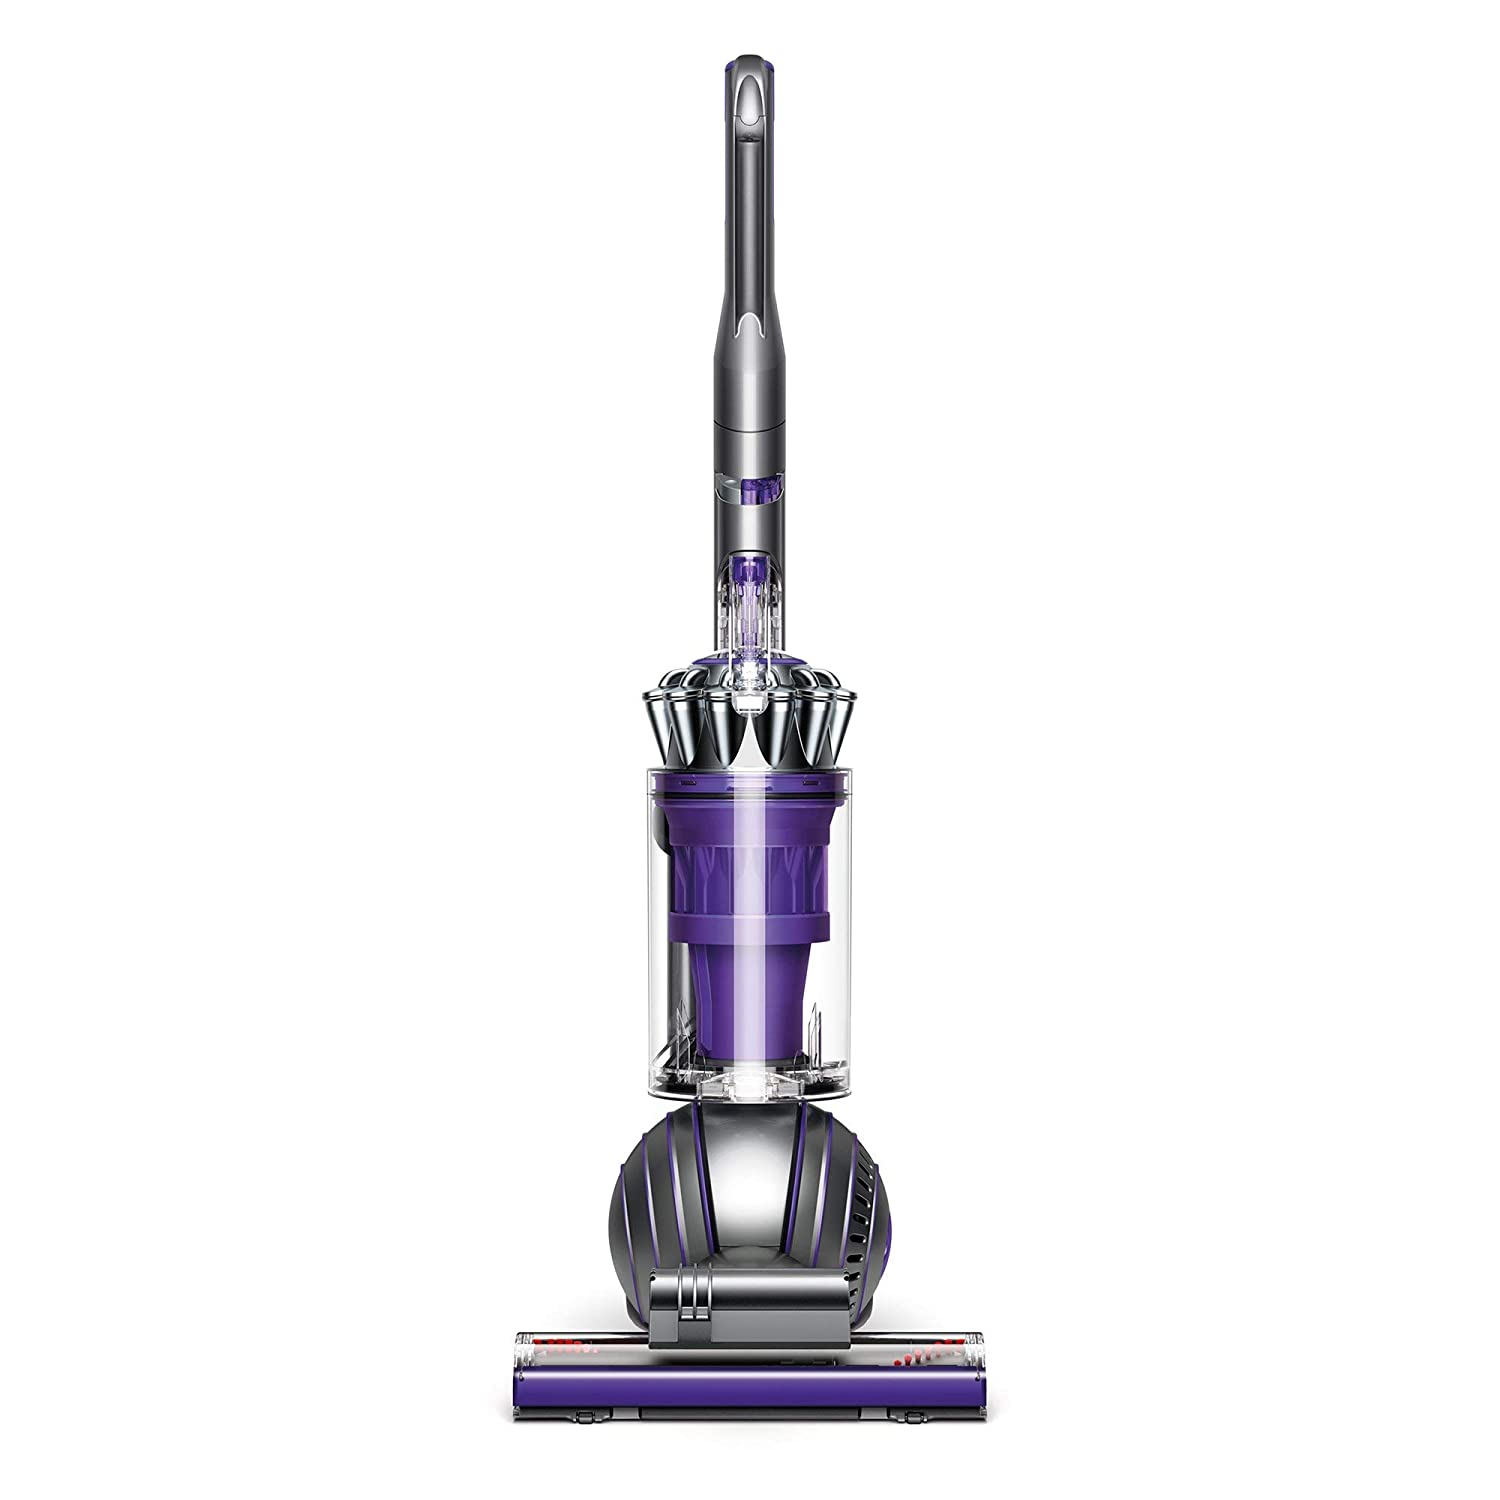 Dyson Ball Animal 2 Upright Vacuum, Iron/Purple (Renewed)